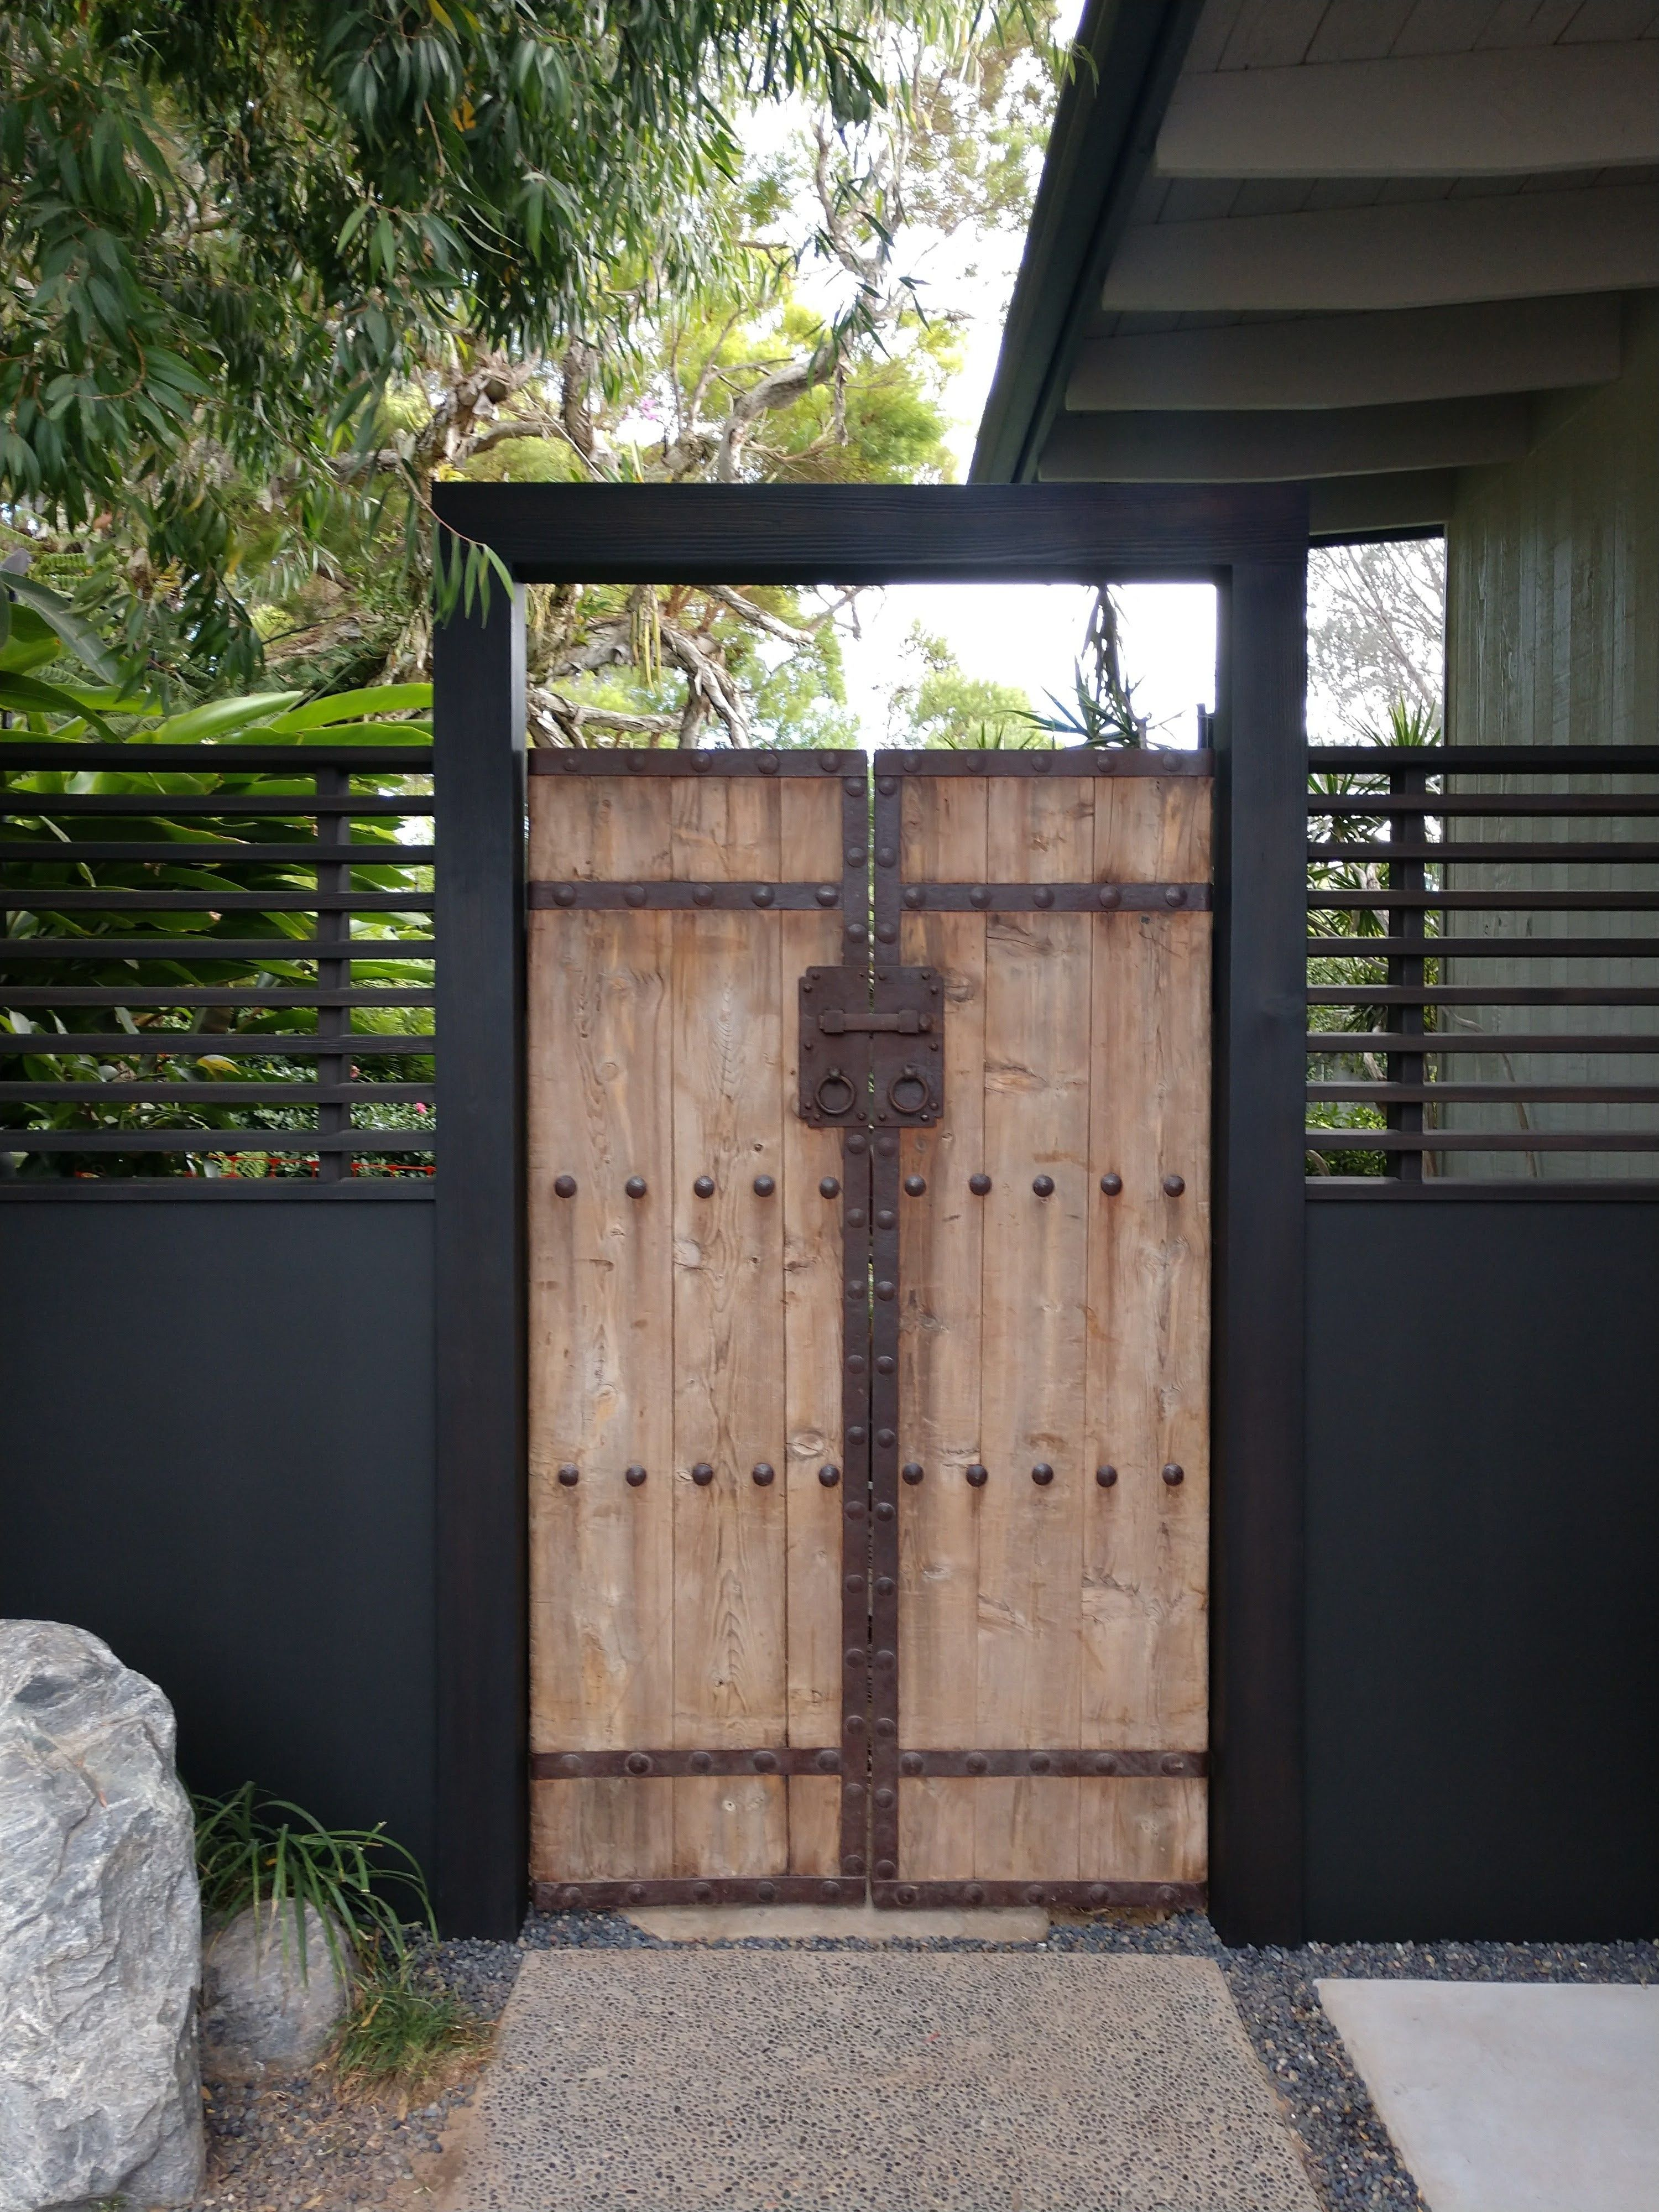 985106Chinese Elmwood Doors (Pair) (With images